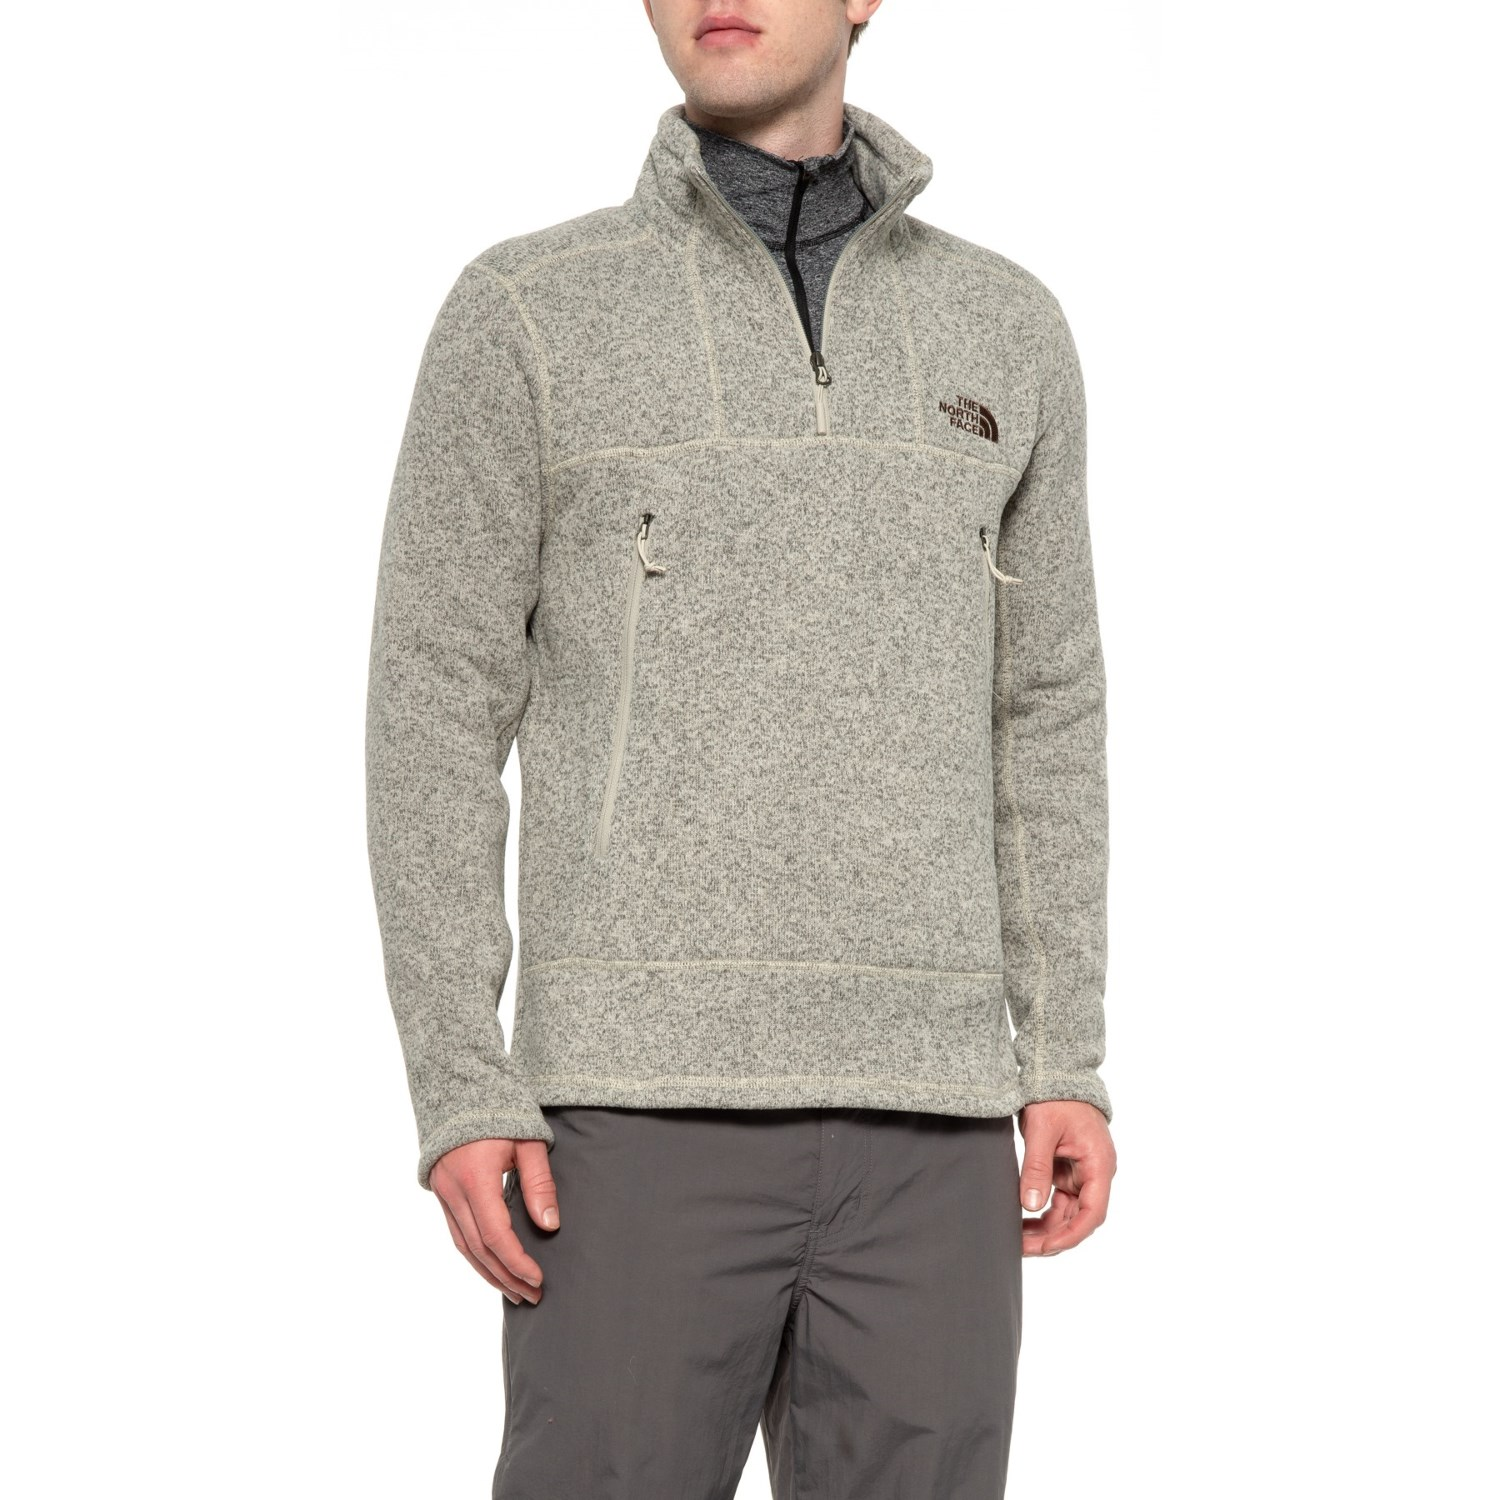 dee0b3550 The North Face Gordon Lyons Fleece Jacket (For Men)